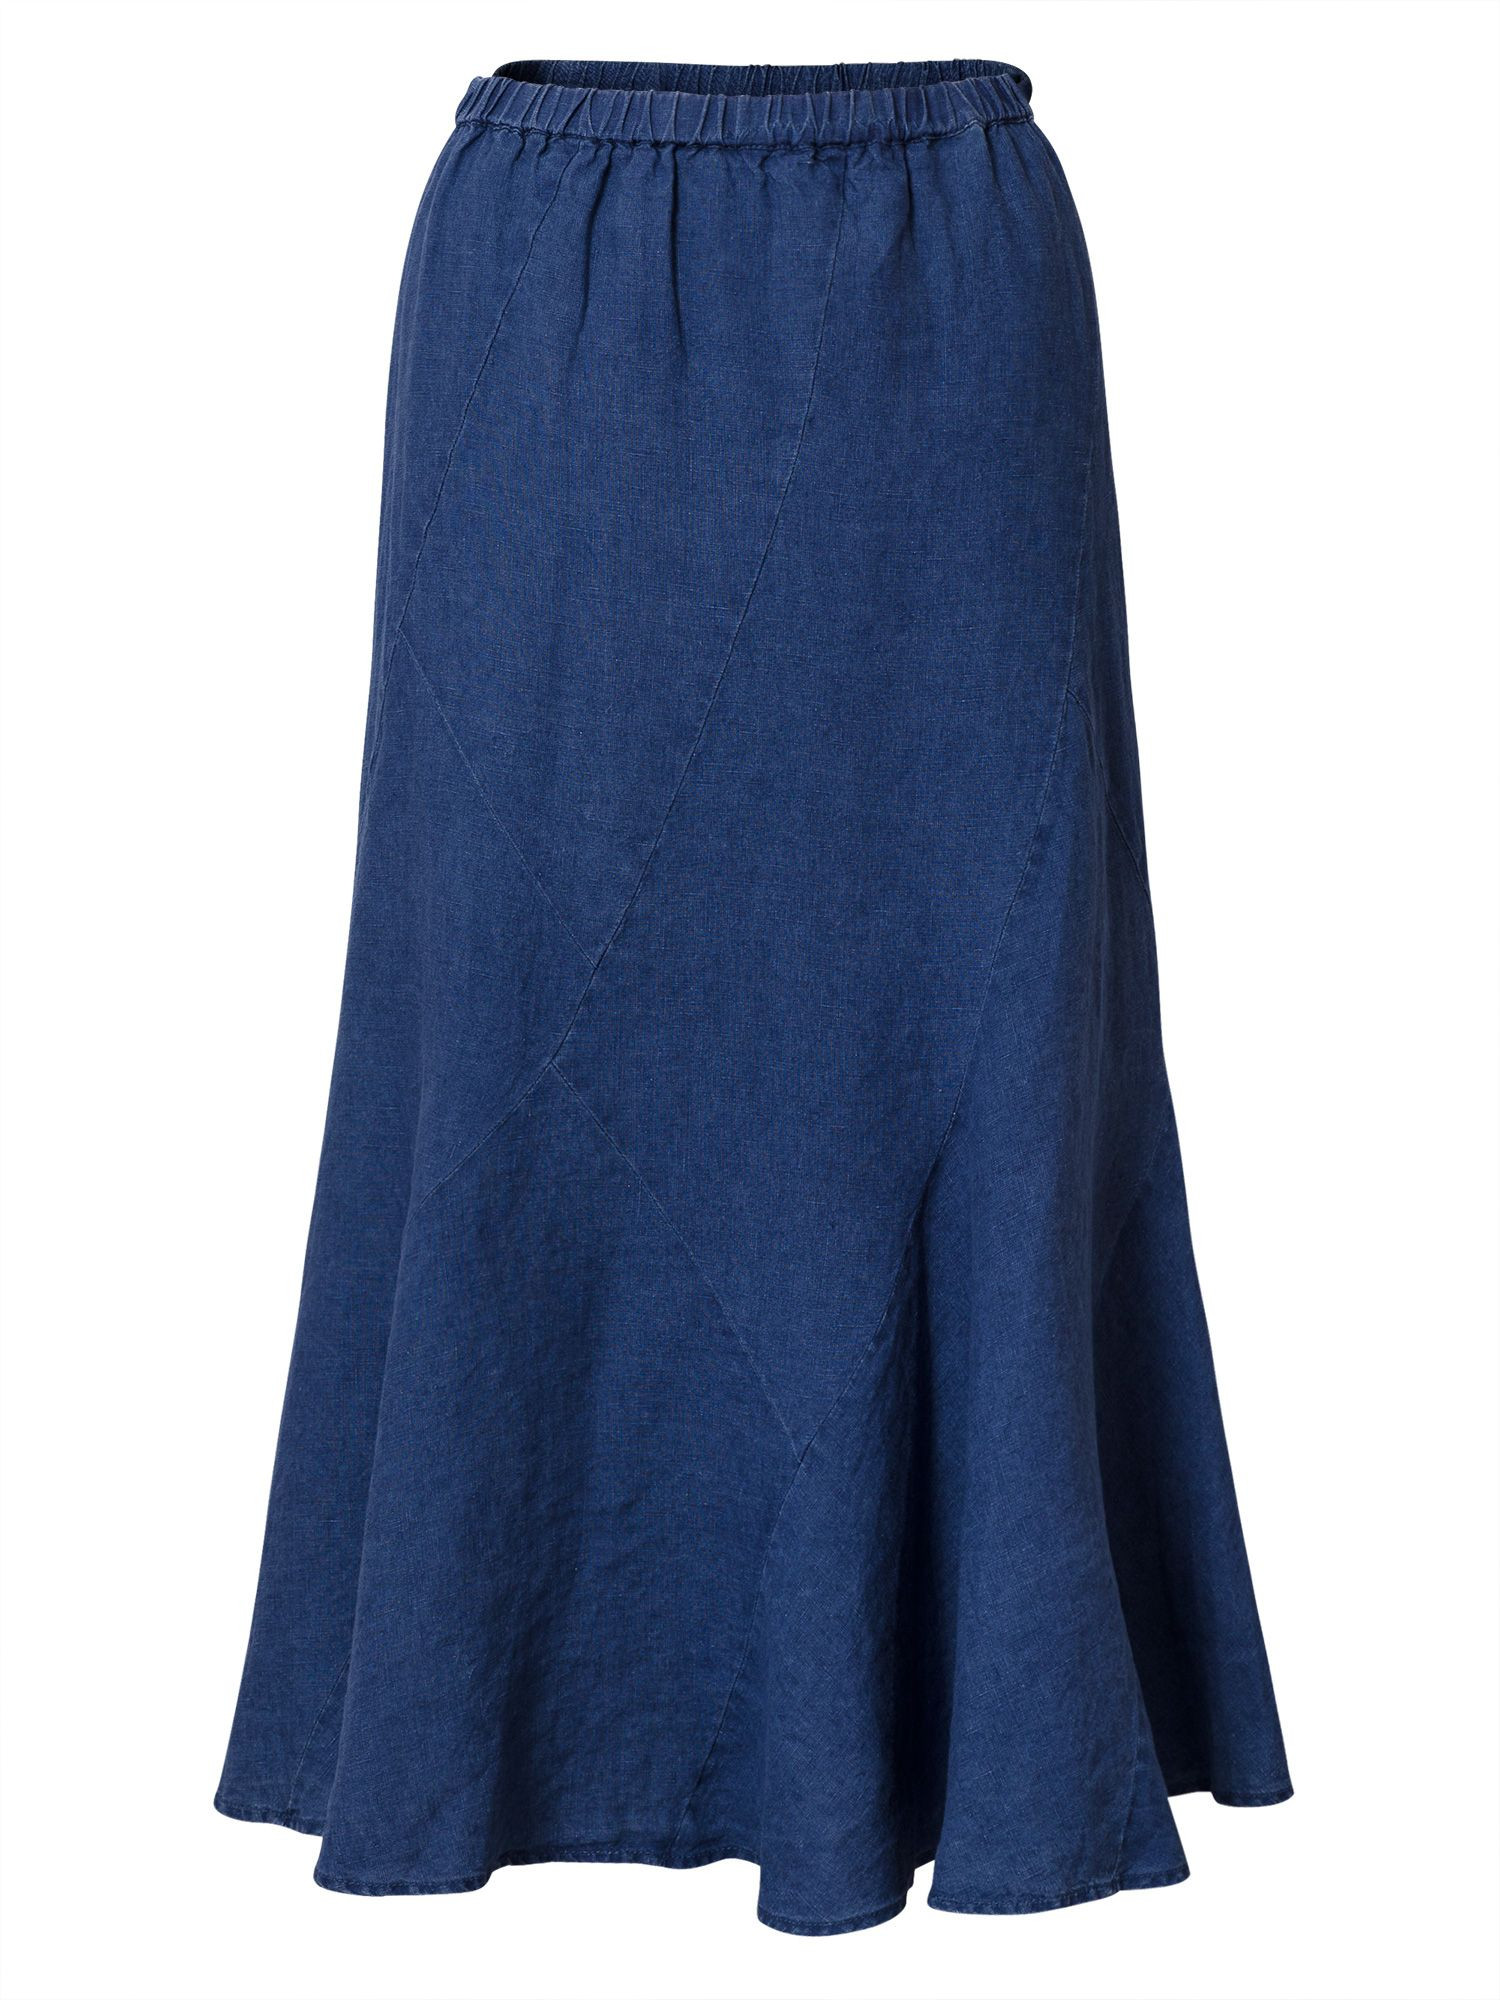 East Linen Cutabout Skirt, Blue